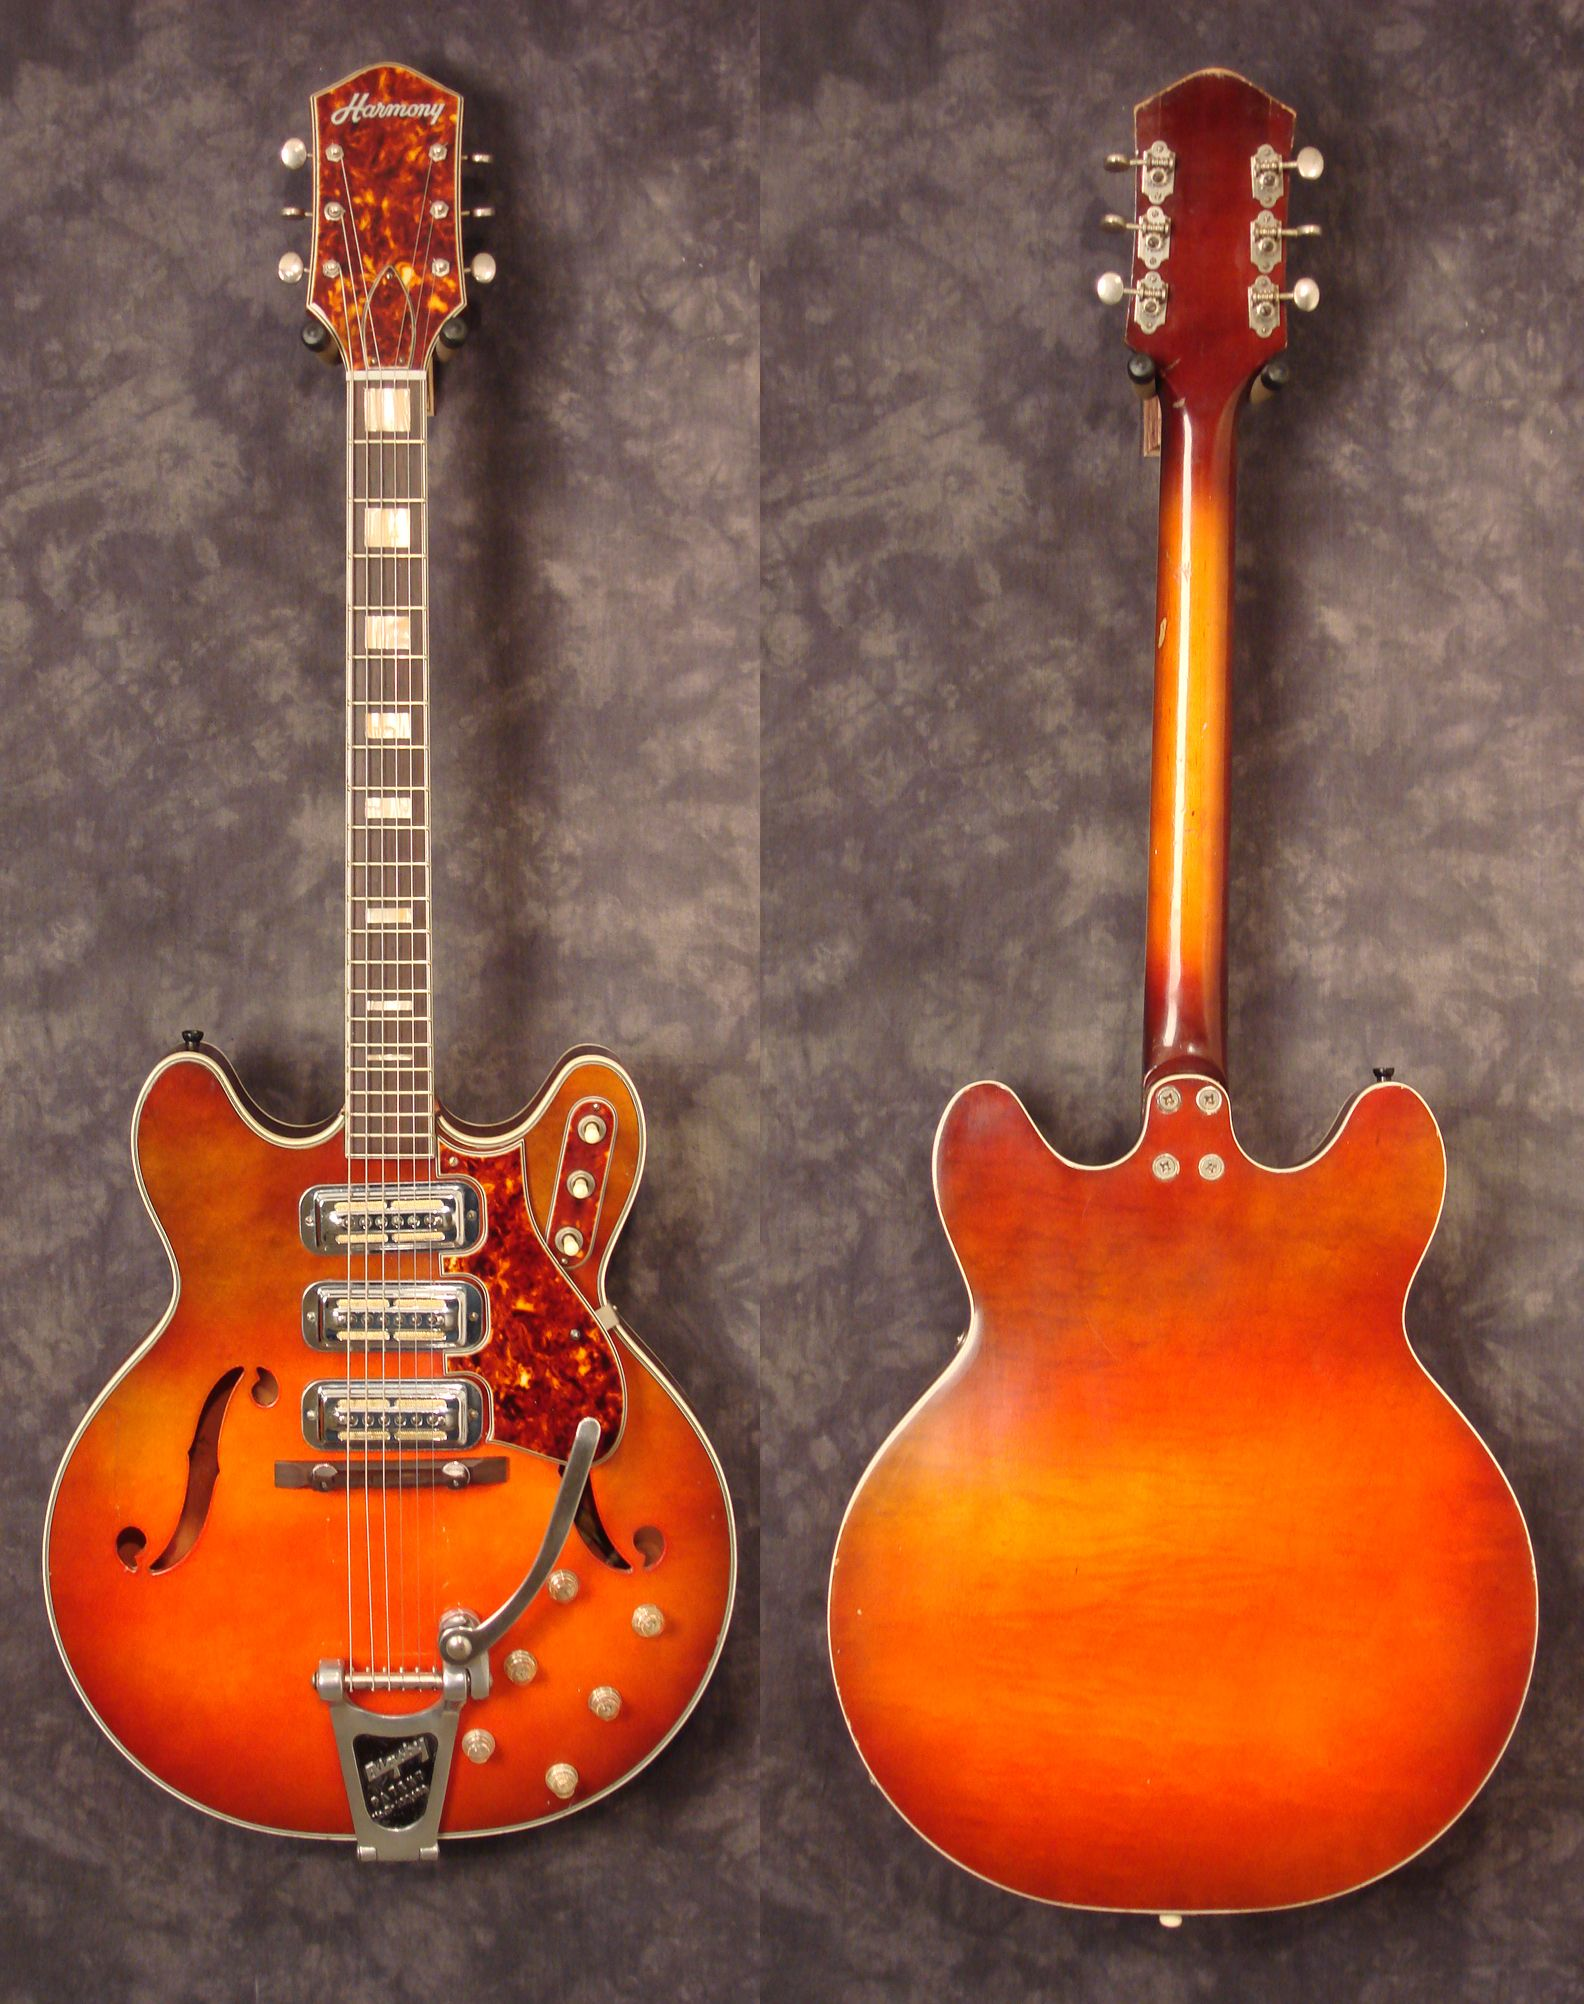 1964 Harmony H78 Dan Auerbach Uses One Of These A Lot Guitar